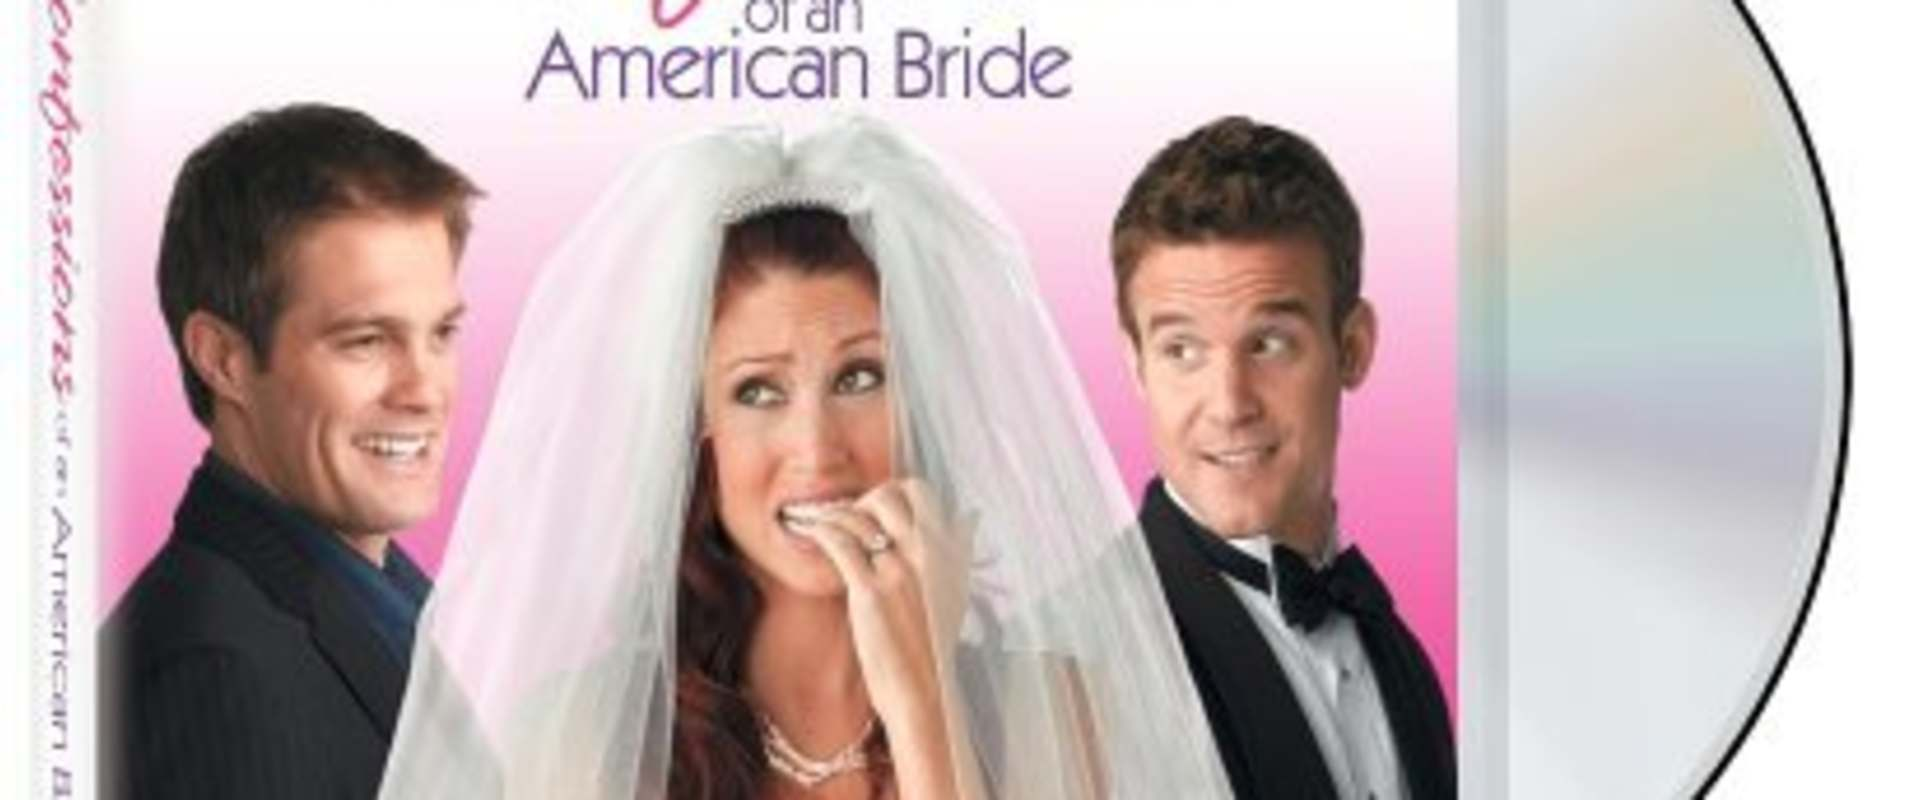 Confessions of an American Bride background 1